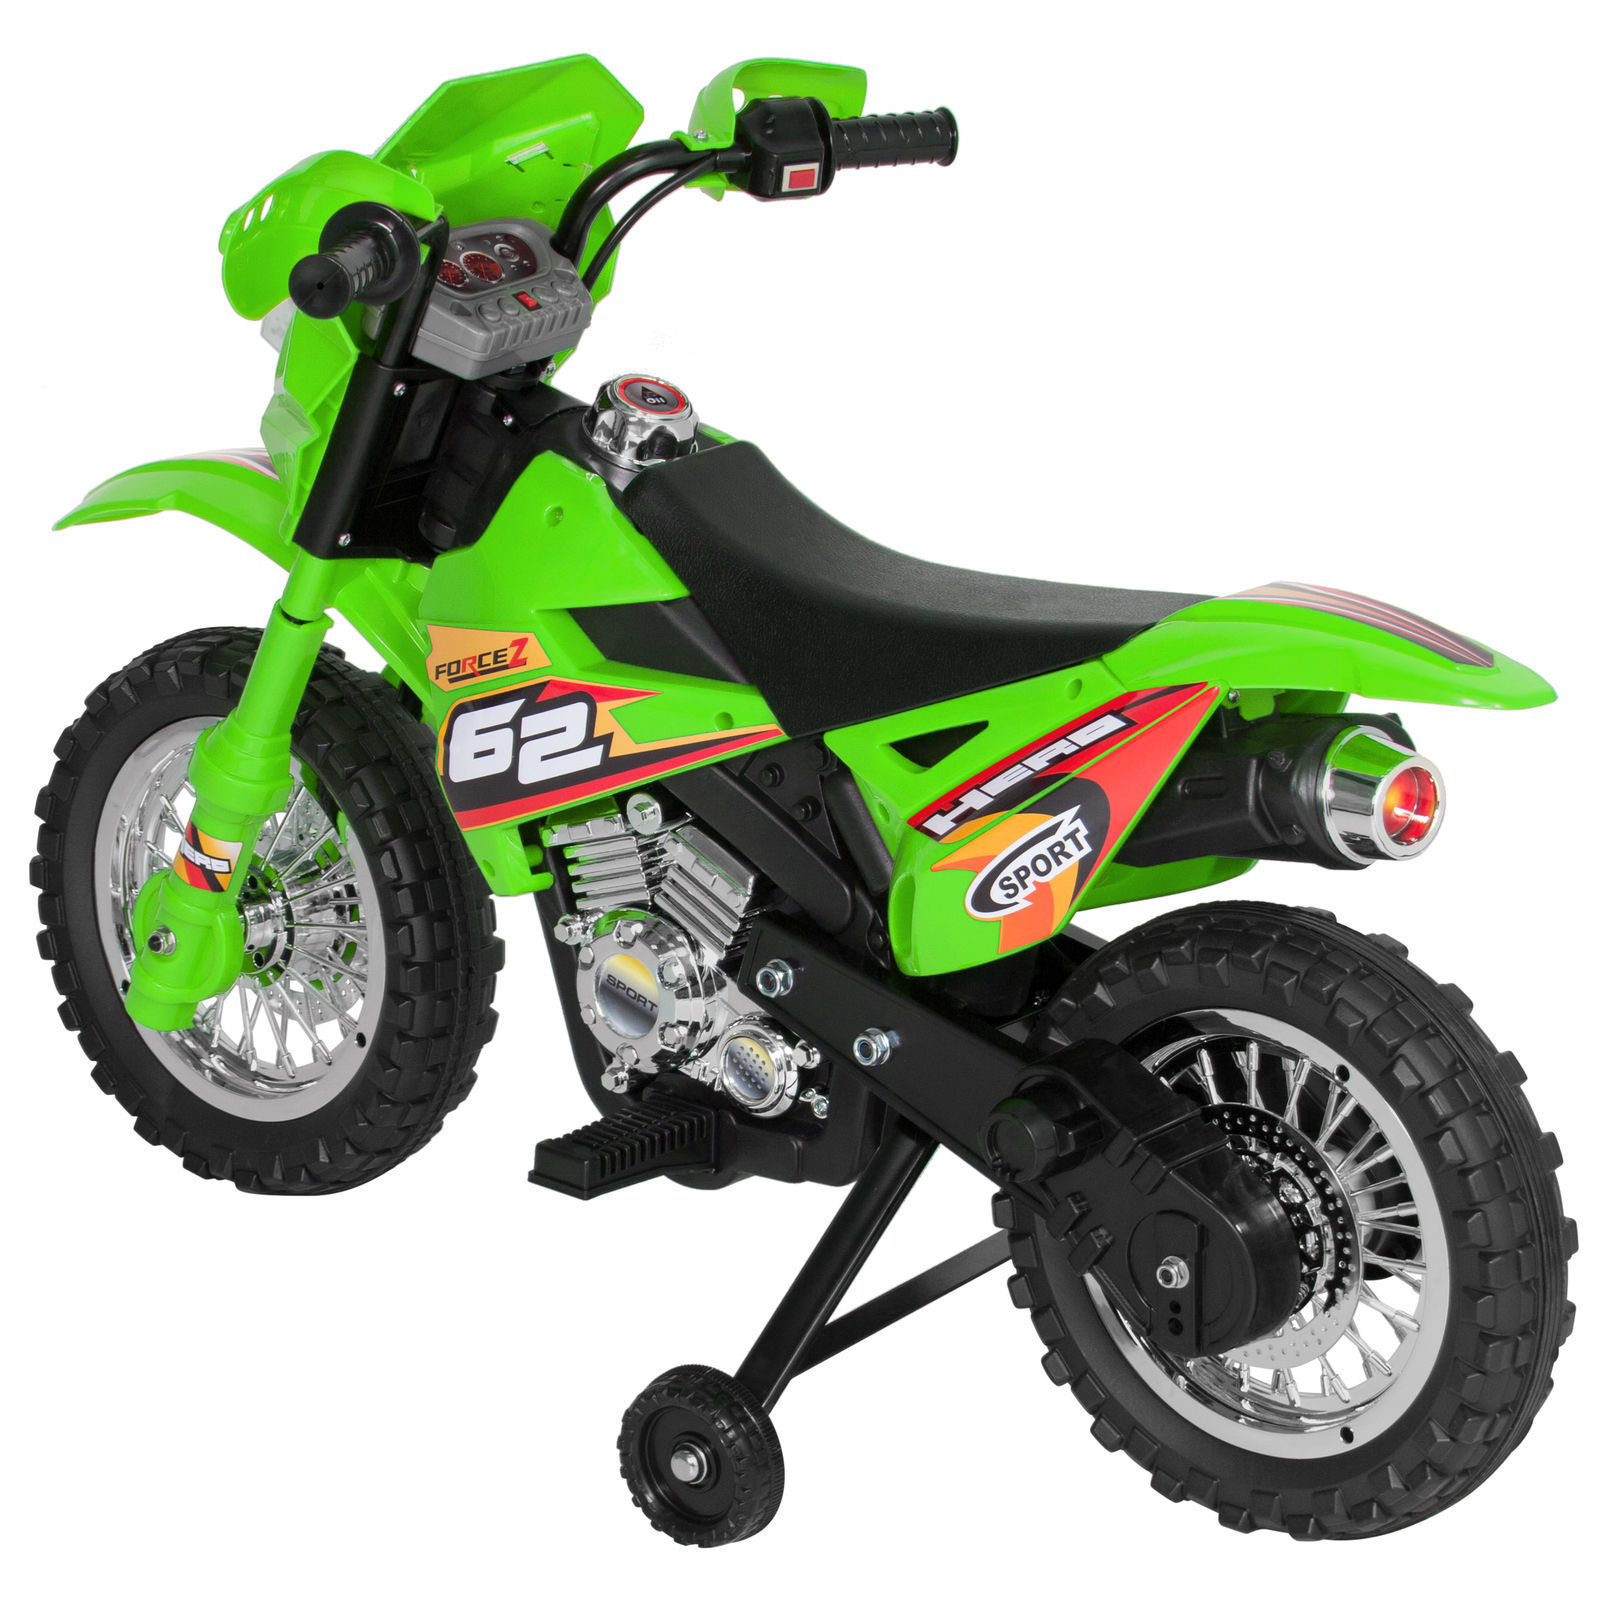 electric motorcycle bike dirt wheels 6v ride training choice motorcycles cars bikes battery speed amazon abs jeep outdoor